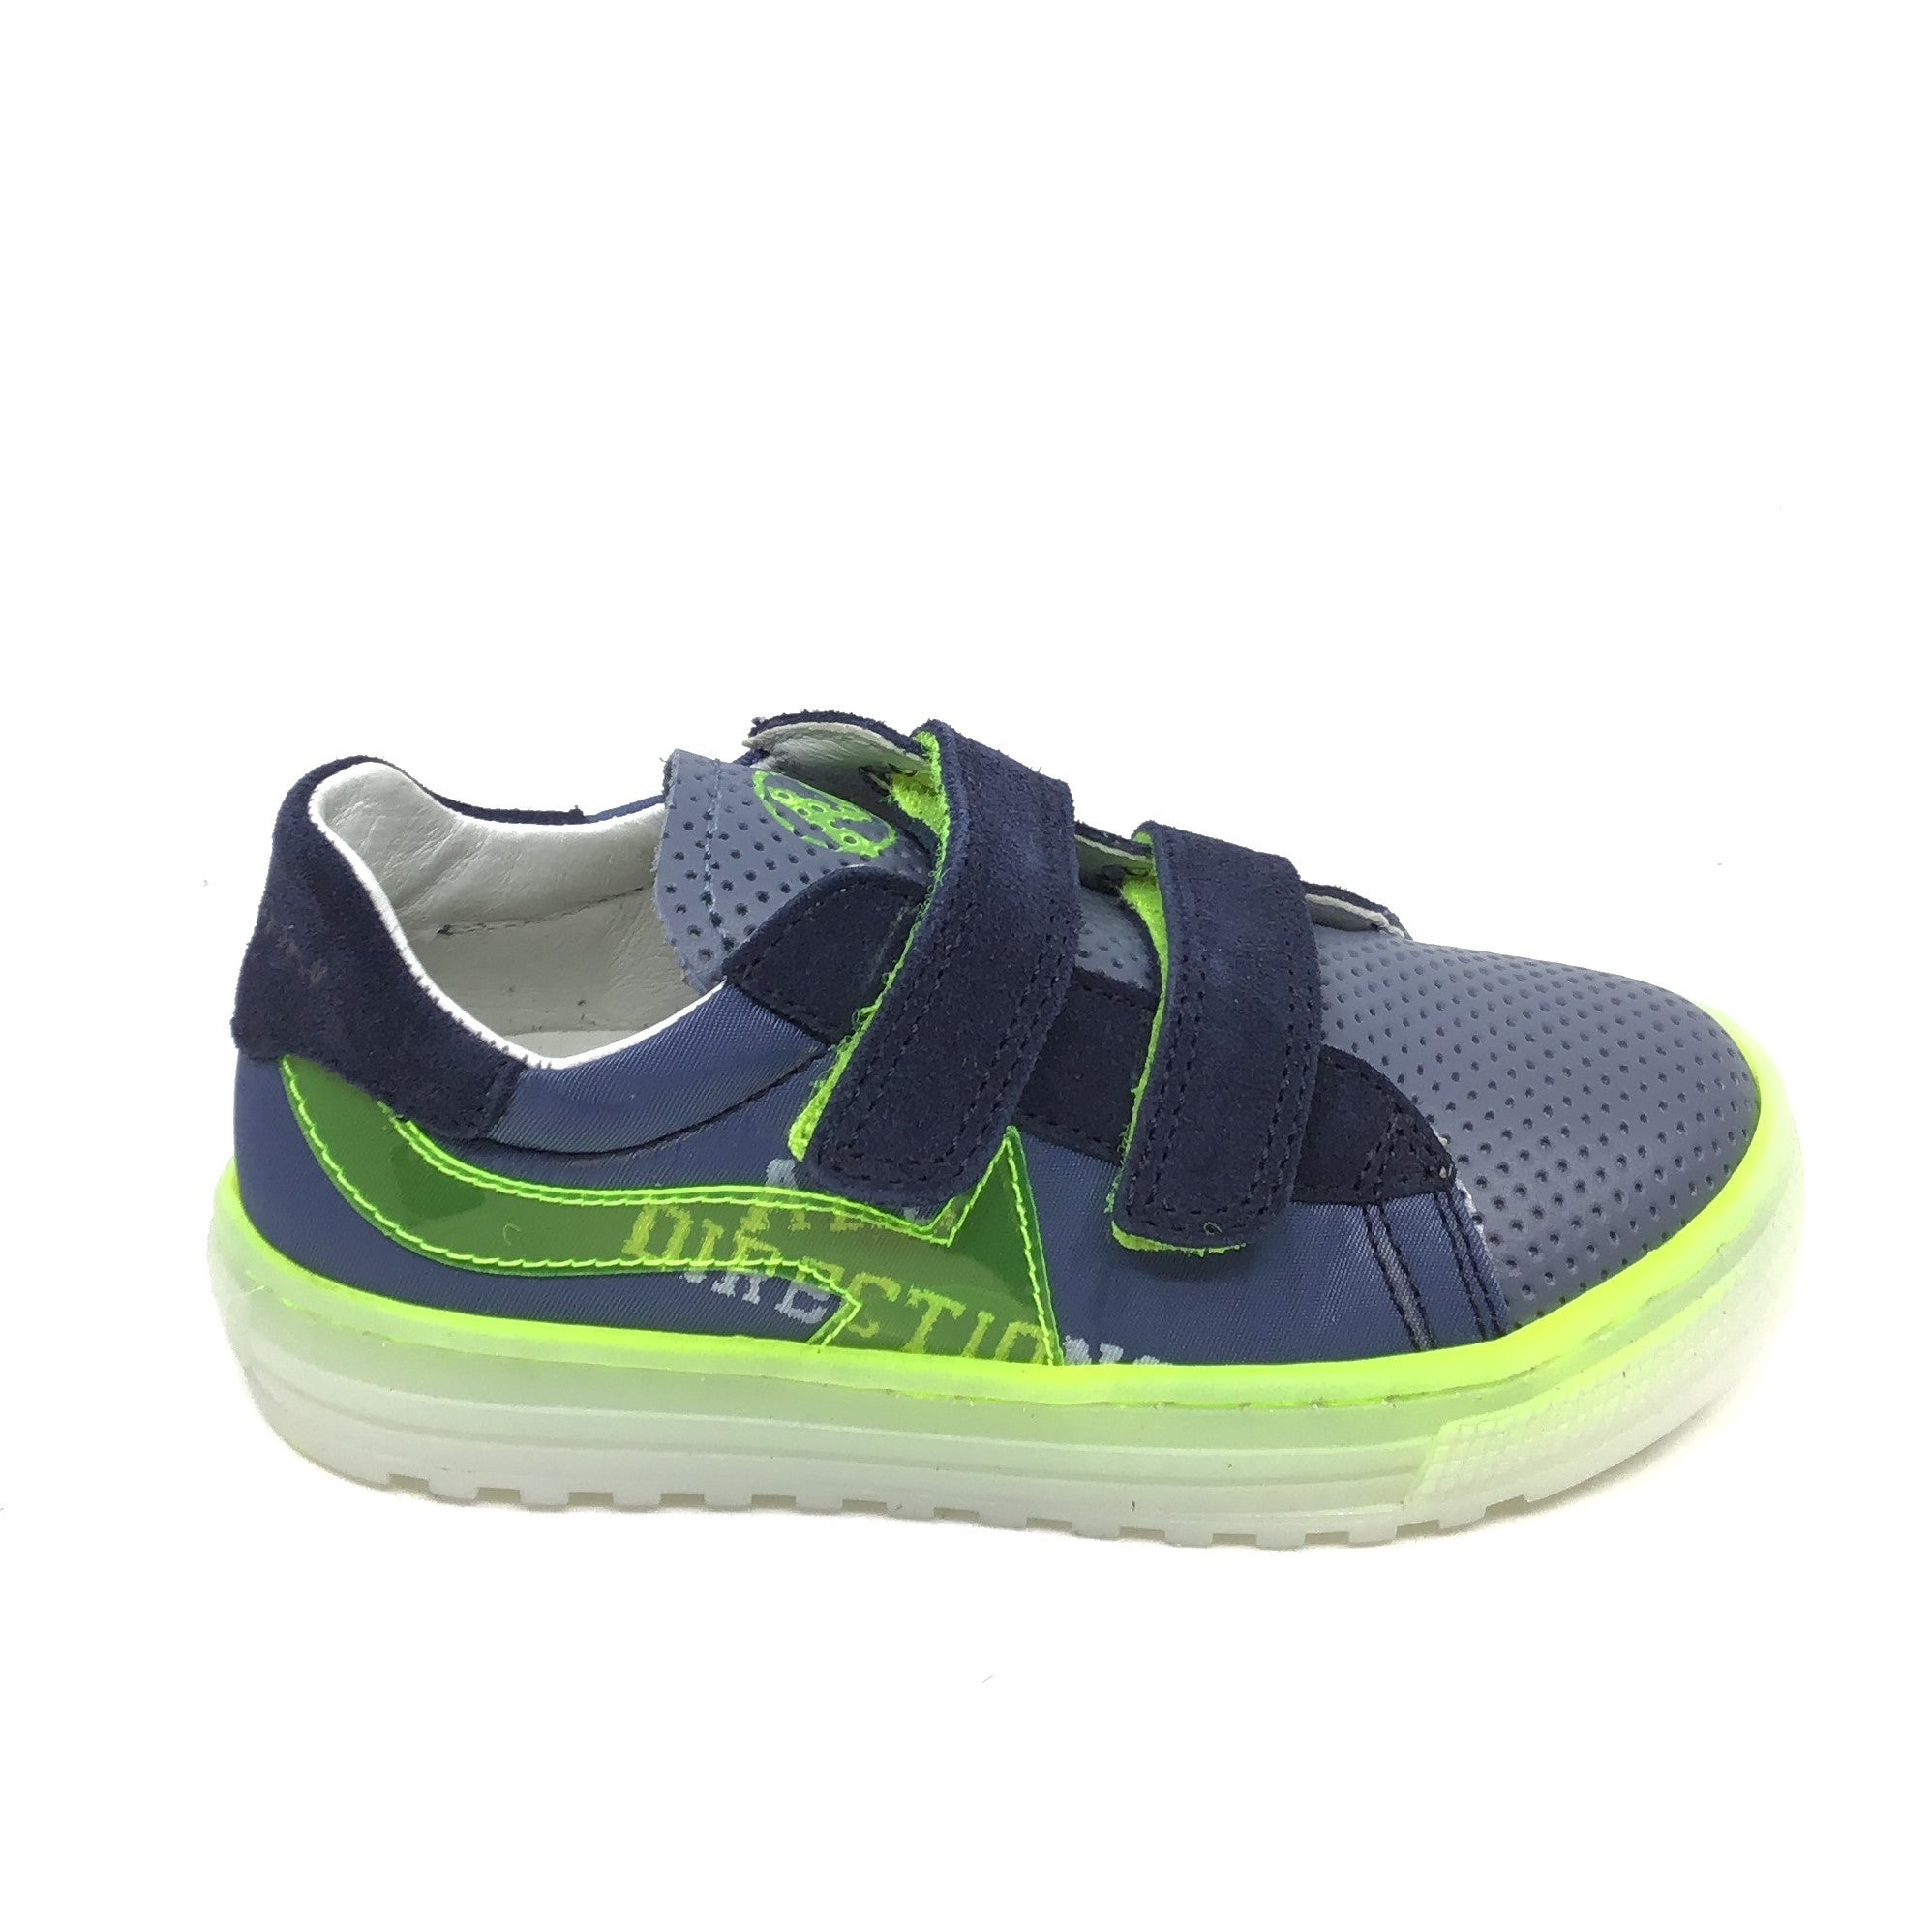 Naturino Blue Sneaker with Yellow Arrow